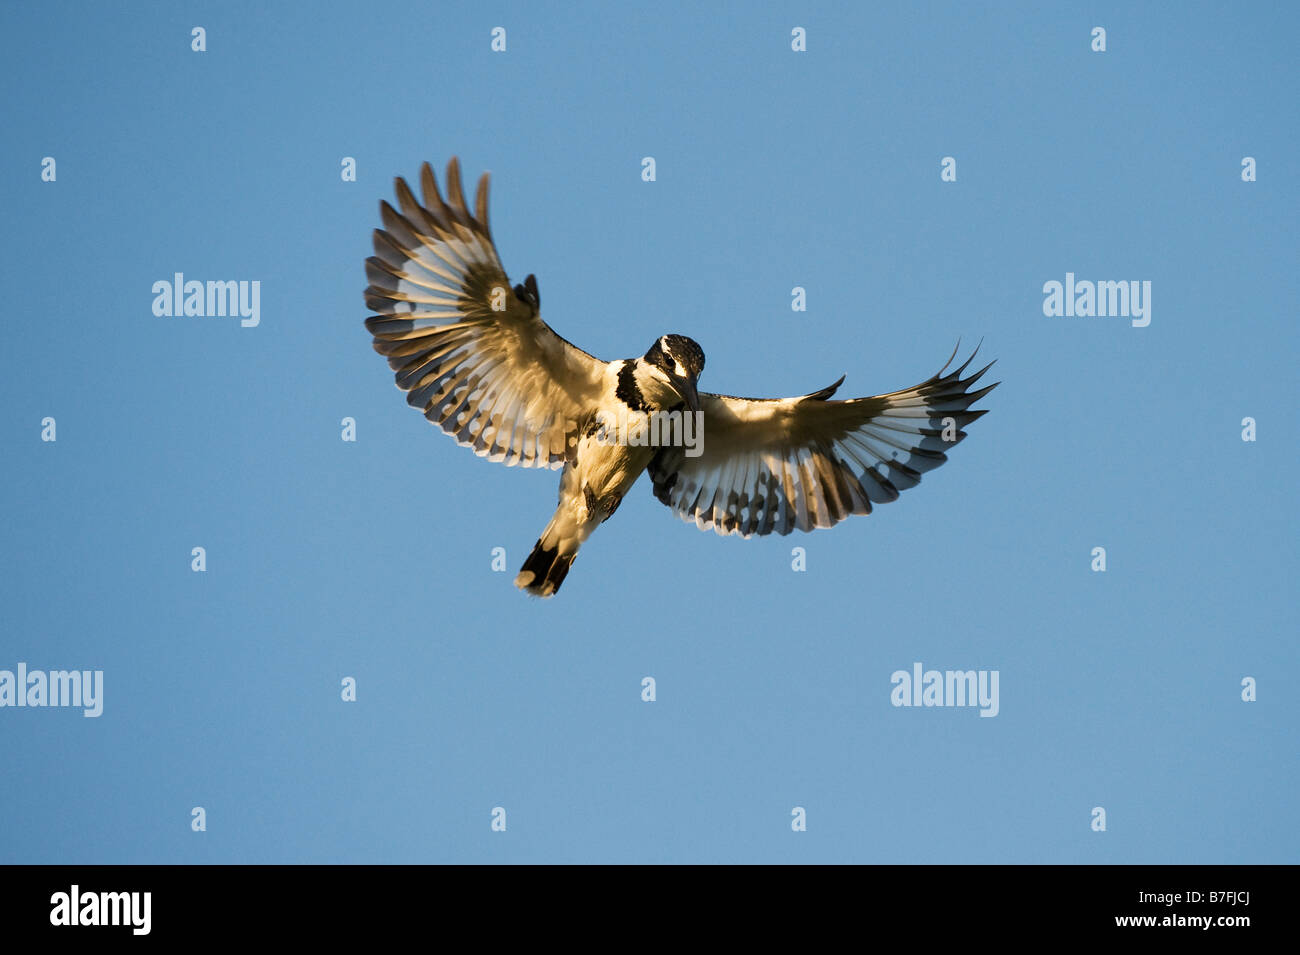 Ceryle rudis. Female Pied Kingfisher hovering above water in the Indian countryside. Andhra Pradesh, India - Stock Image